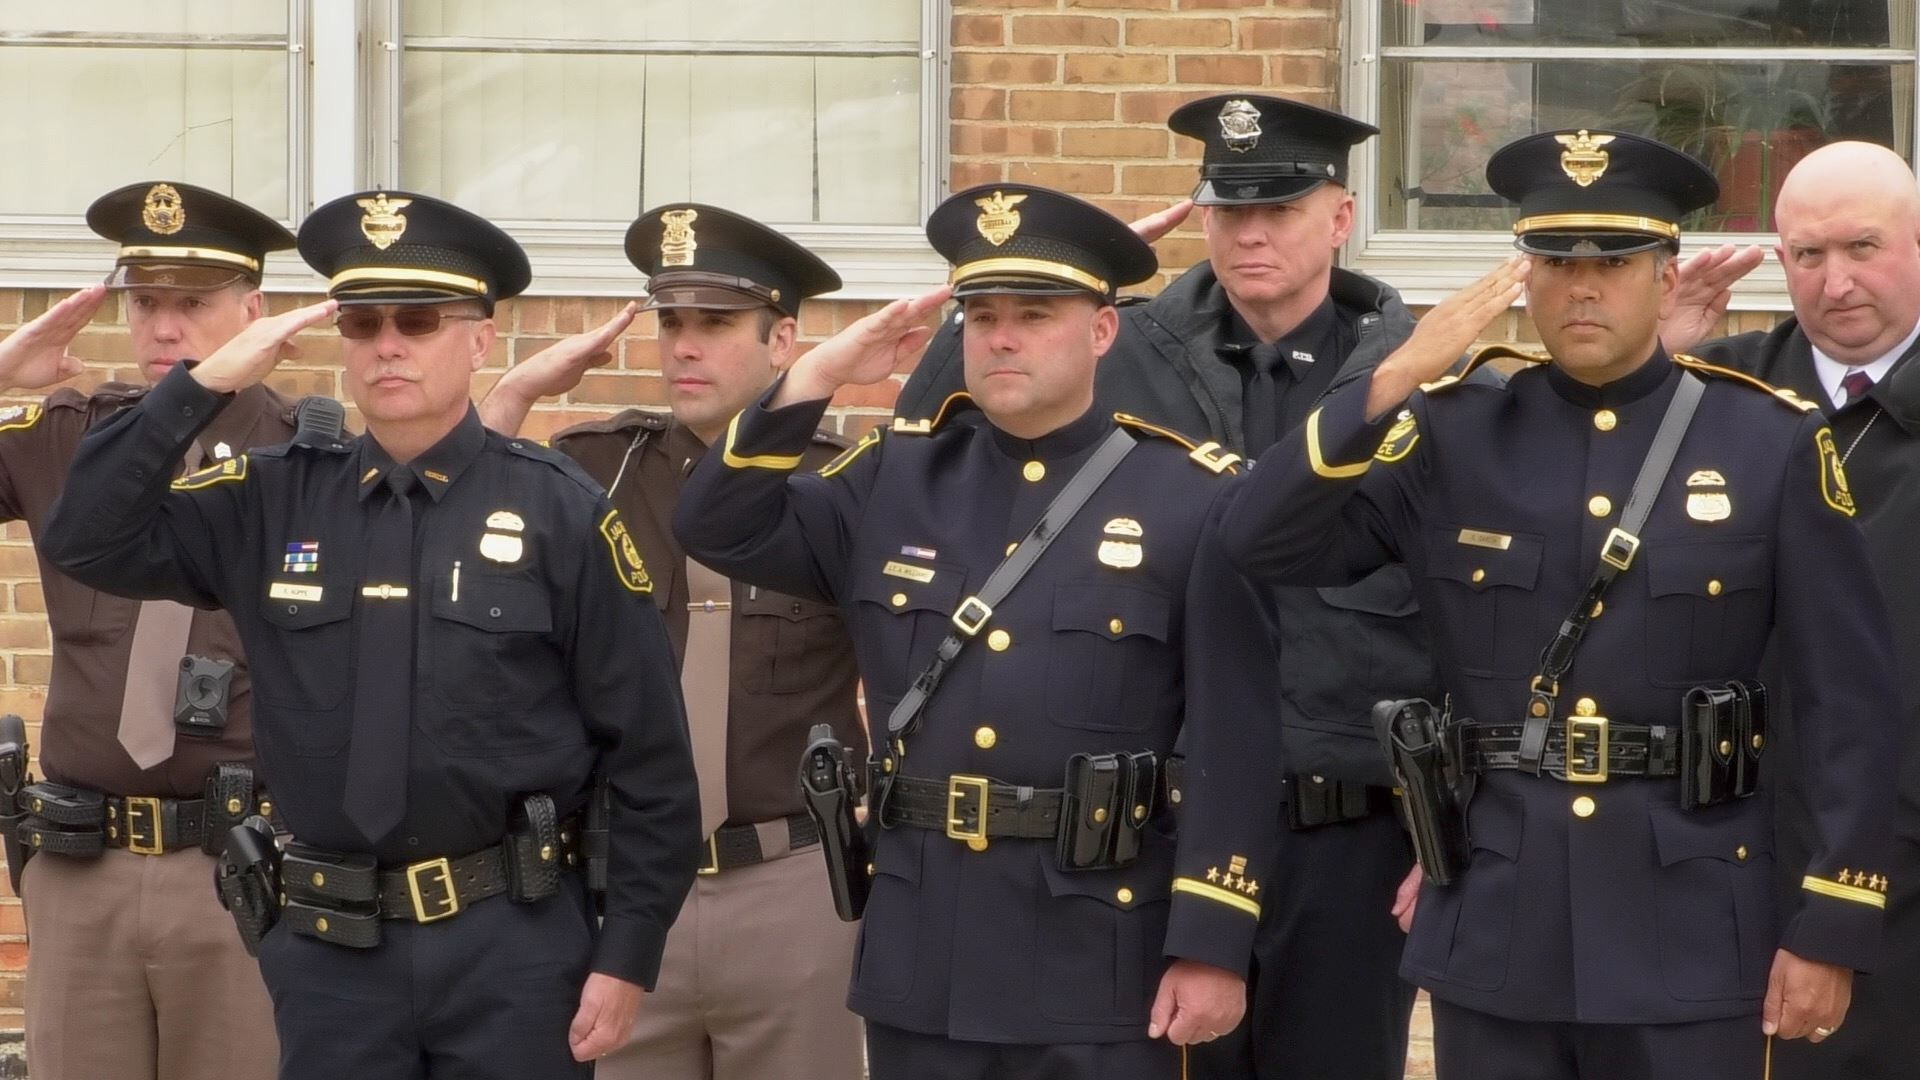 officers stand in a line and salute.